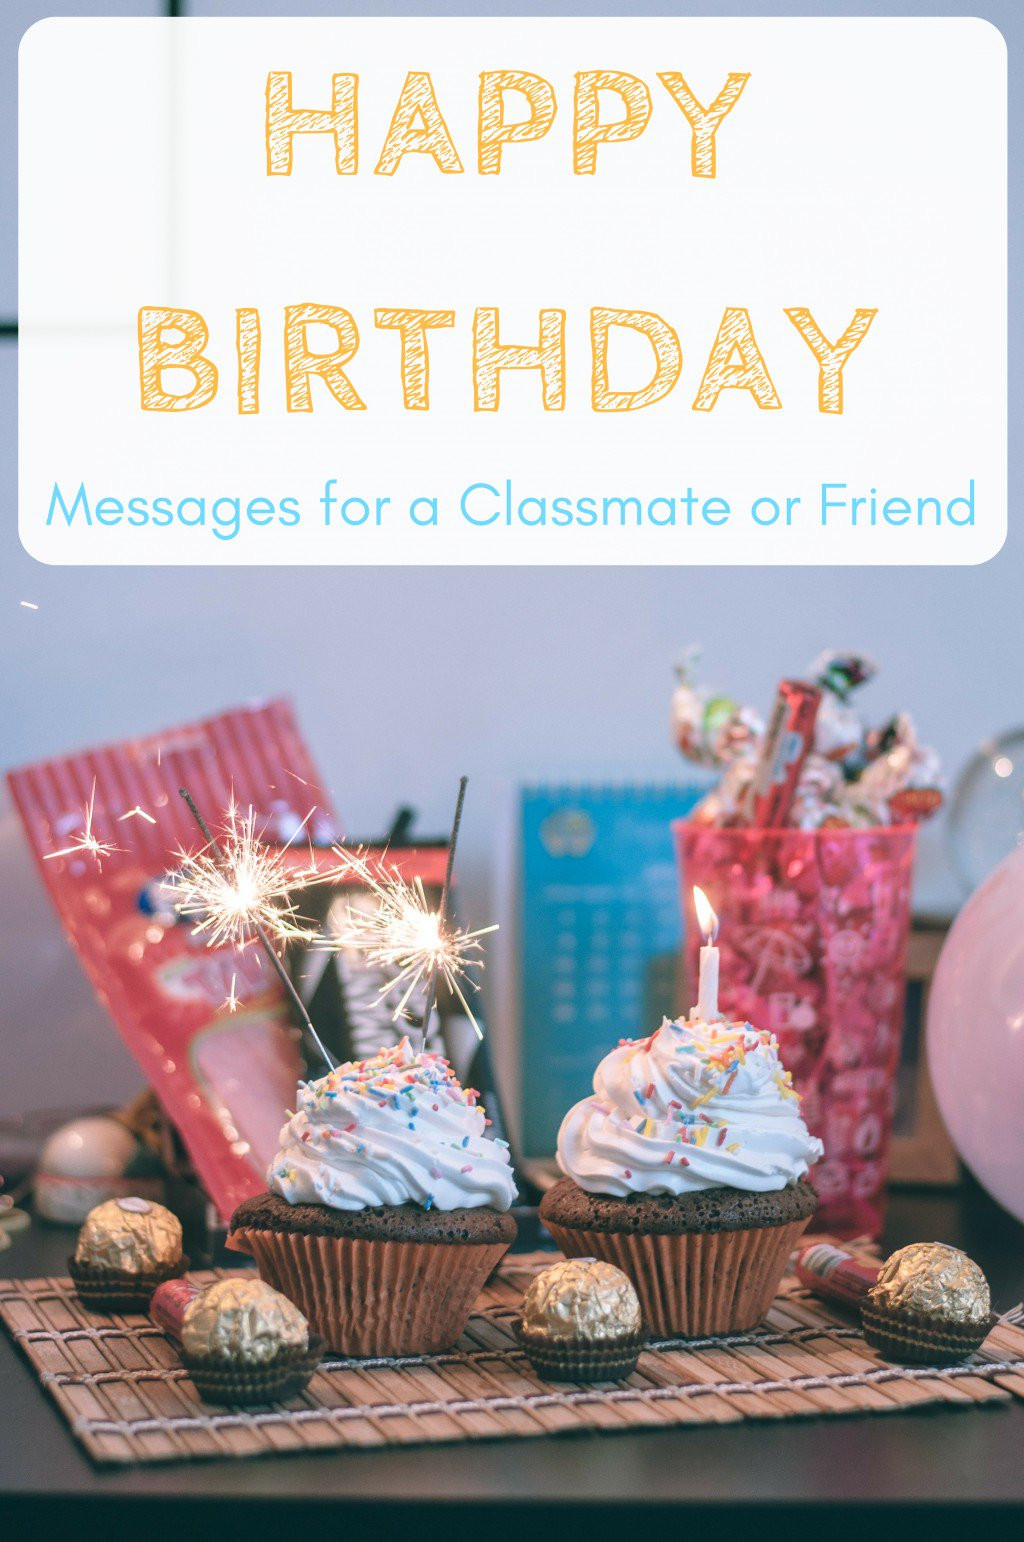 Best ideas about Birthday Wishes For Friends . Save or Pin Happy Birthday Wishes for a Classmate School Friend or Now.